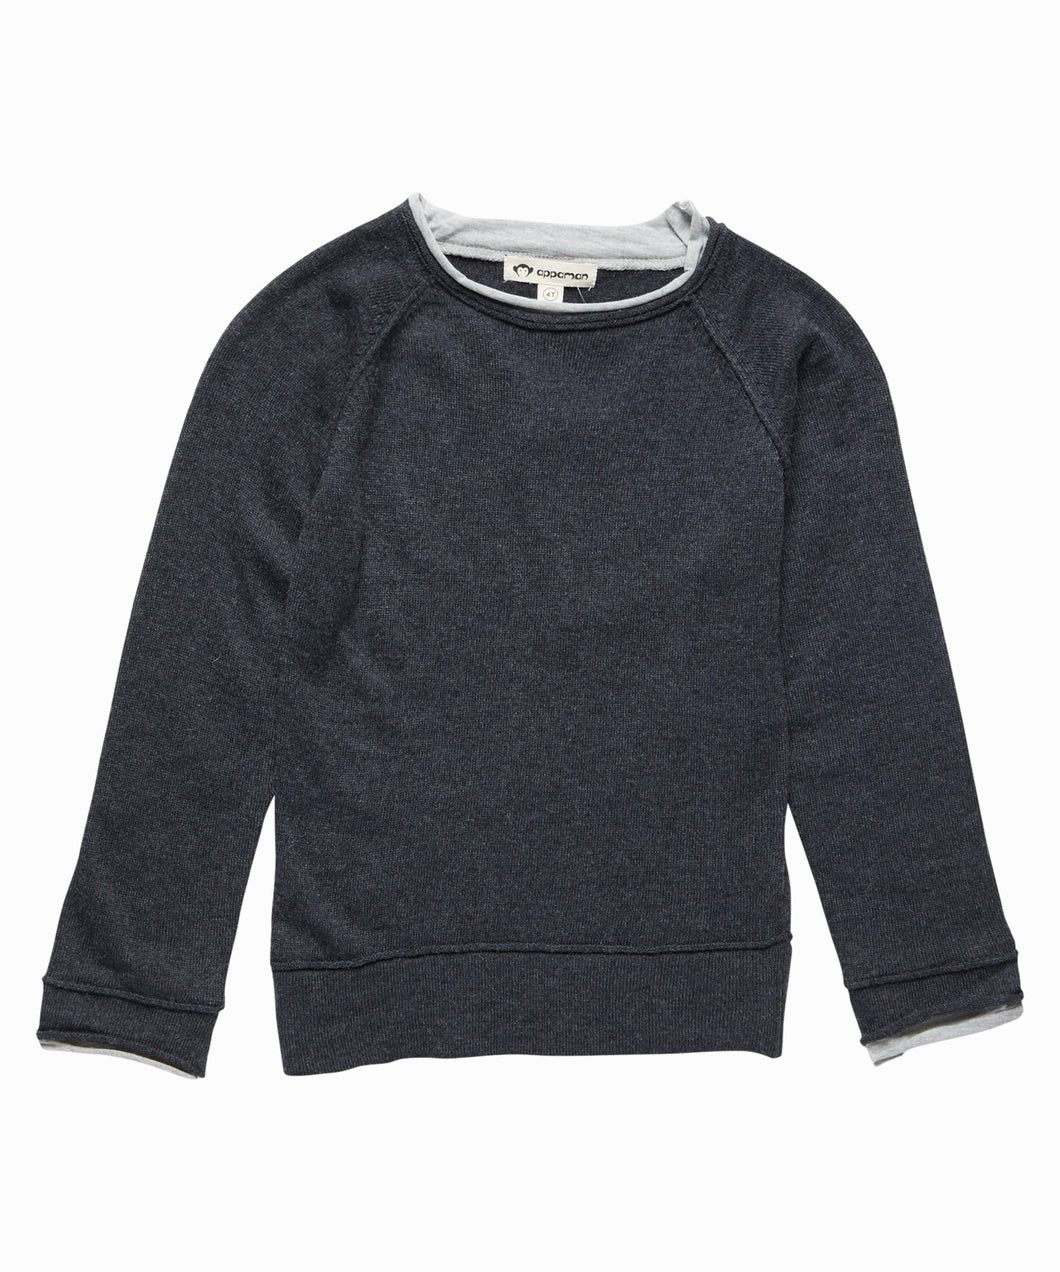 Jackson Roll Neck Sweater In Charcoal